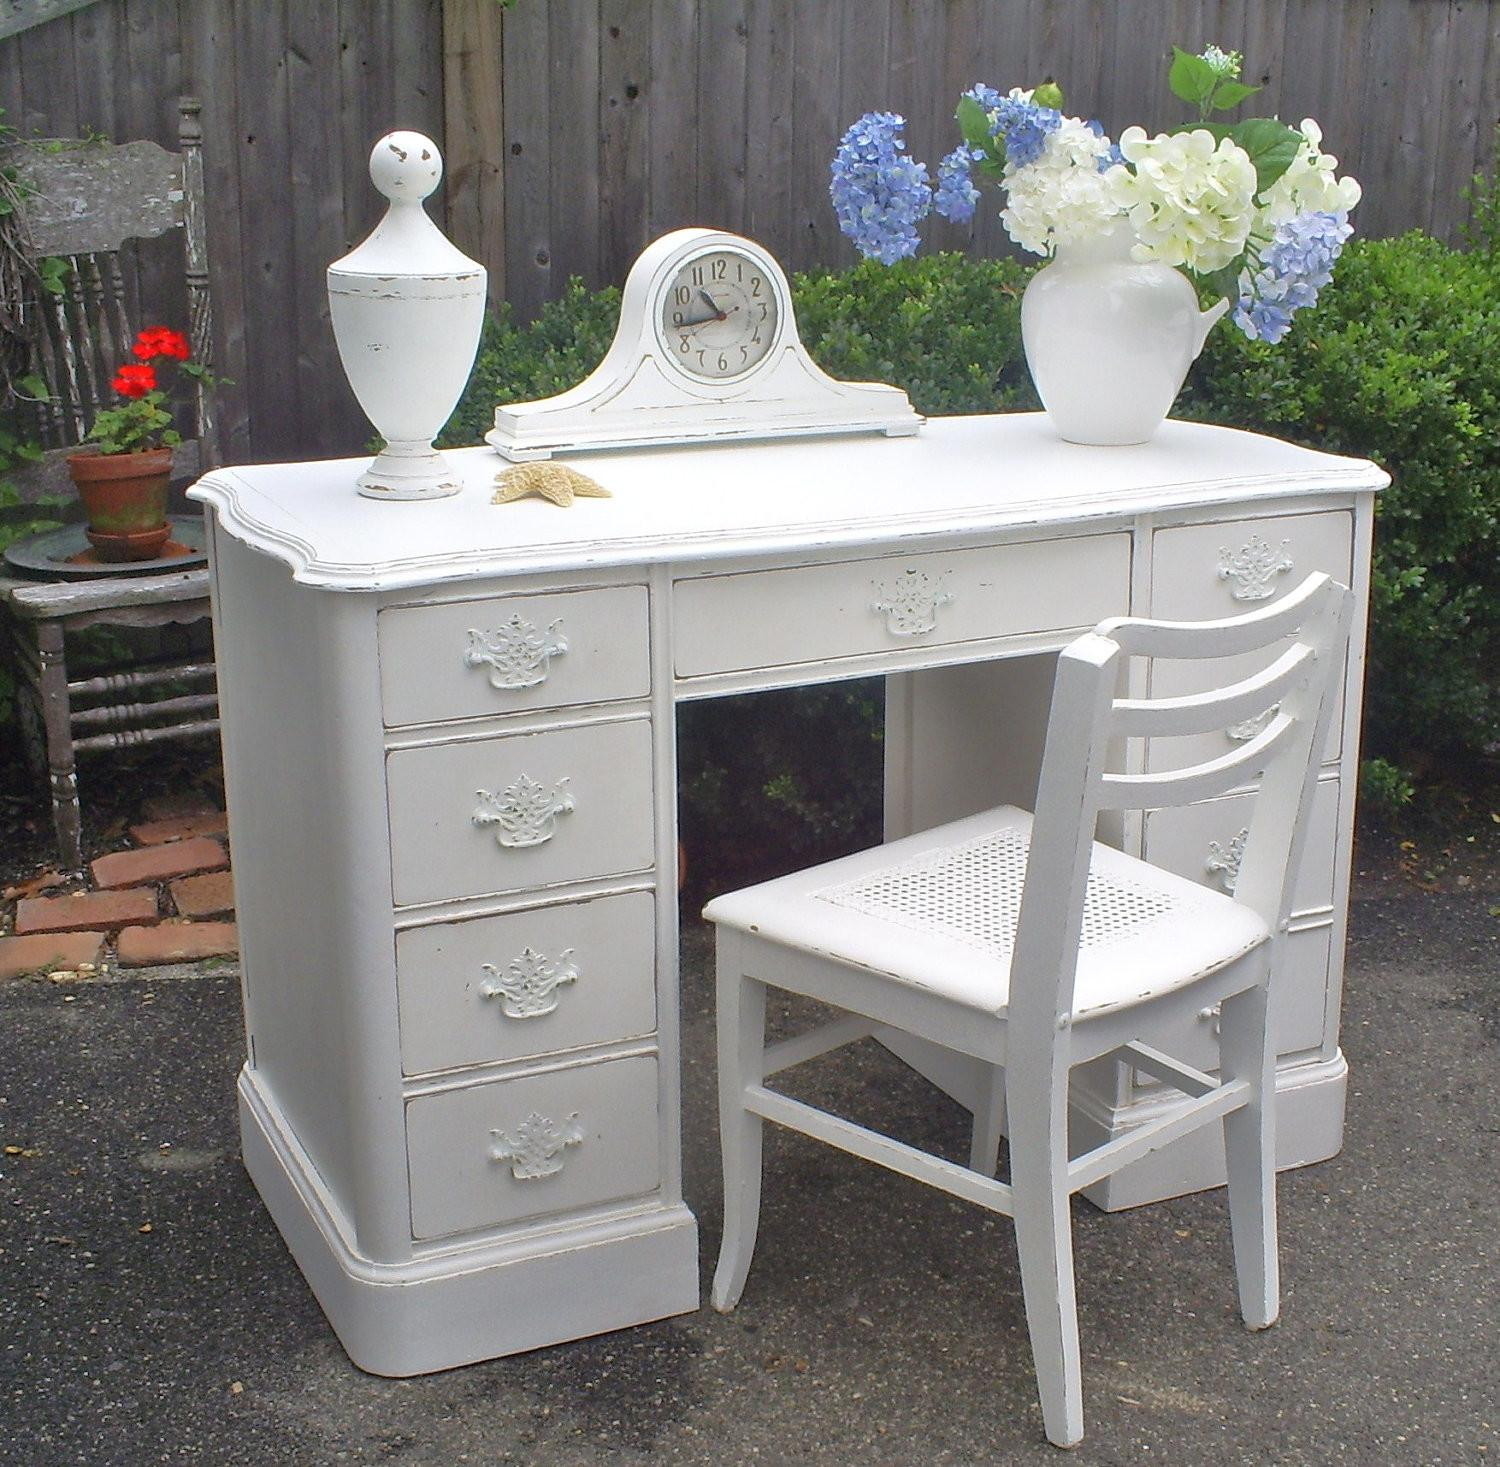 Desk White Shabby Chic Painted Furniture Backporchco